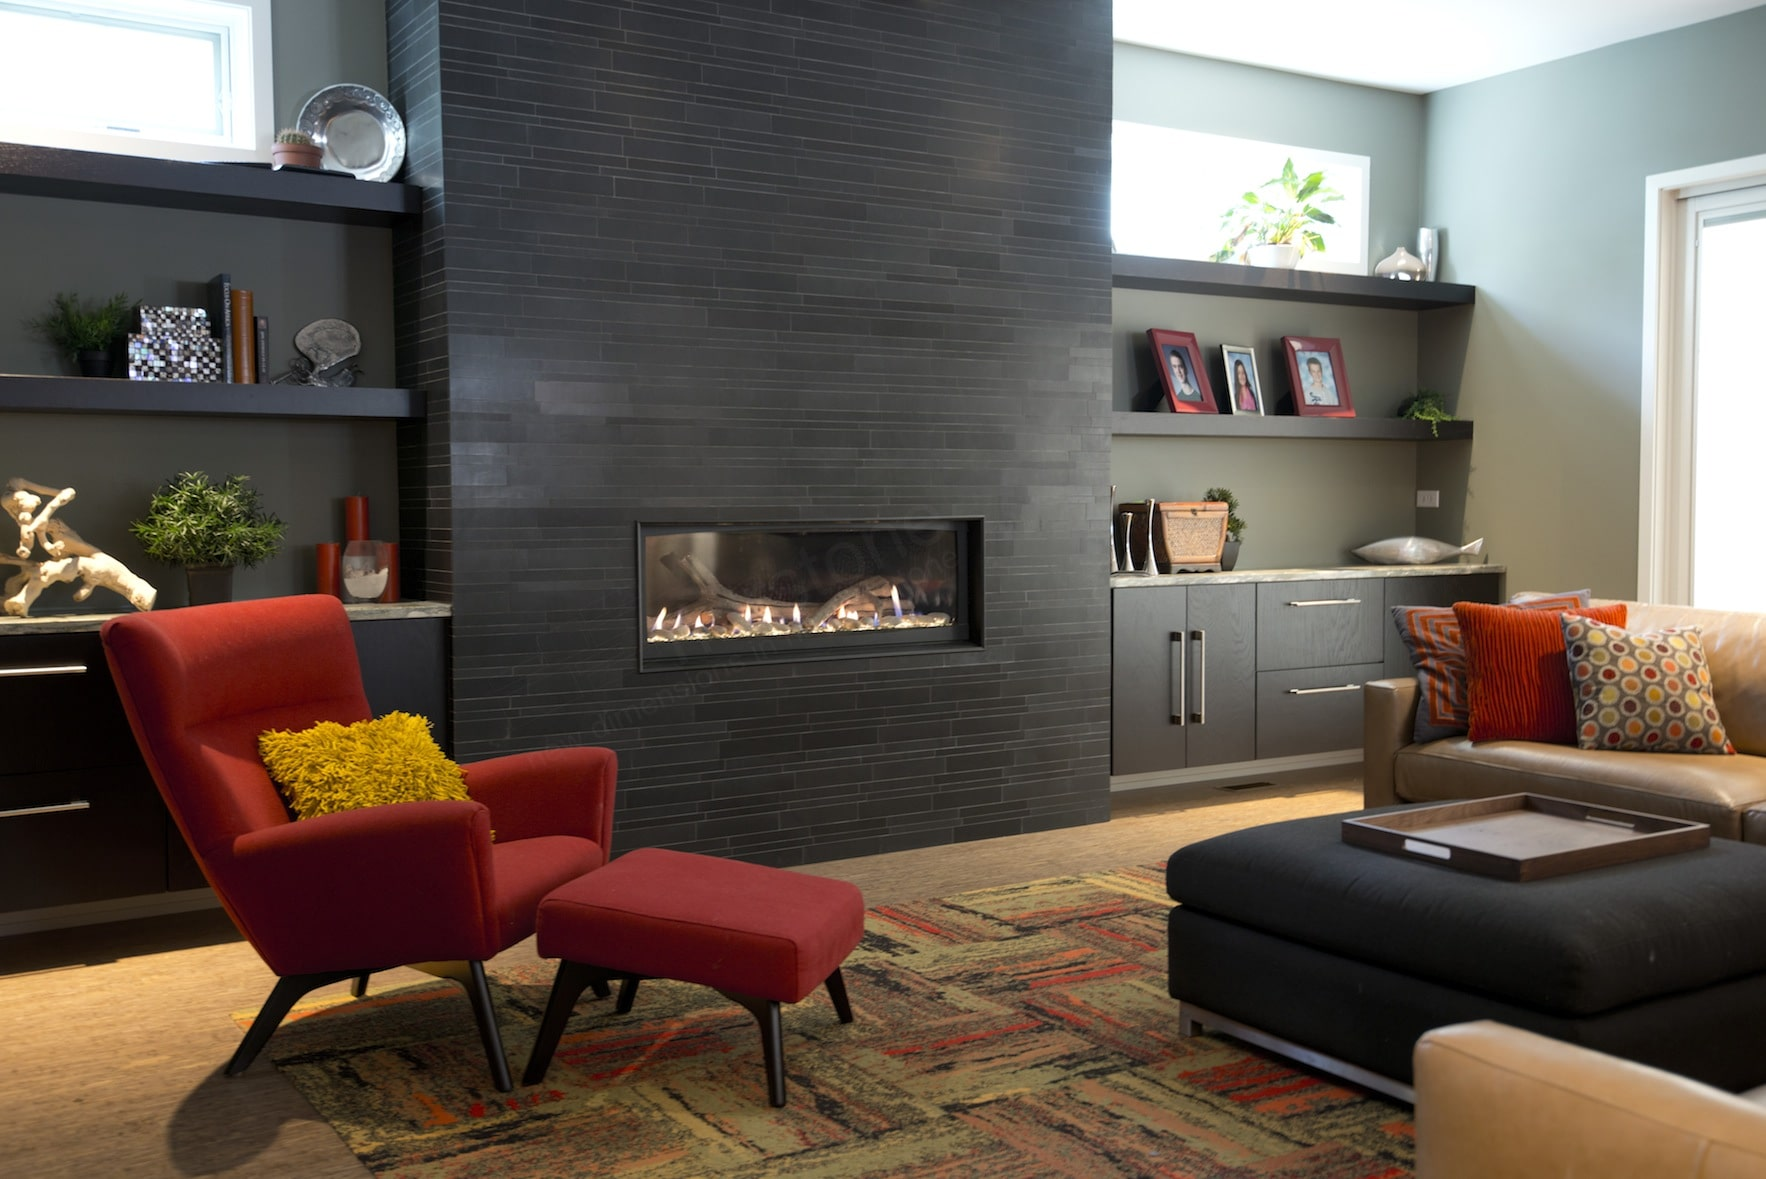 Norstone Natural Stone Veneer Ebony Lynia Interlocking Tile used on a modern fireplace with a contrasting colored red chair